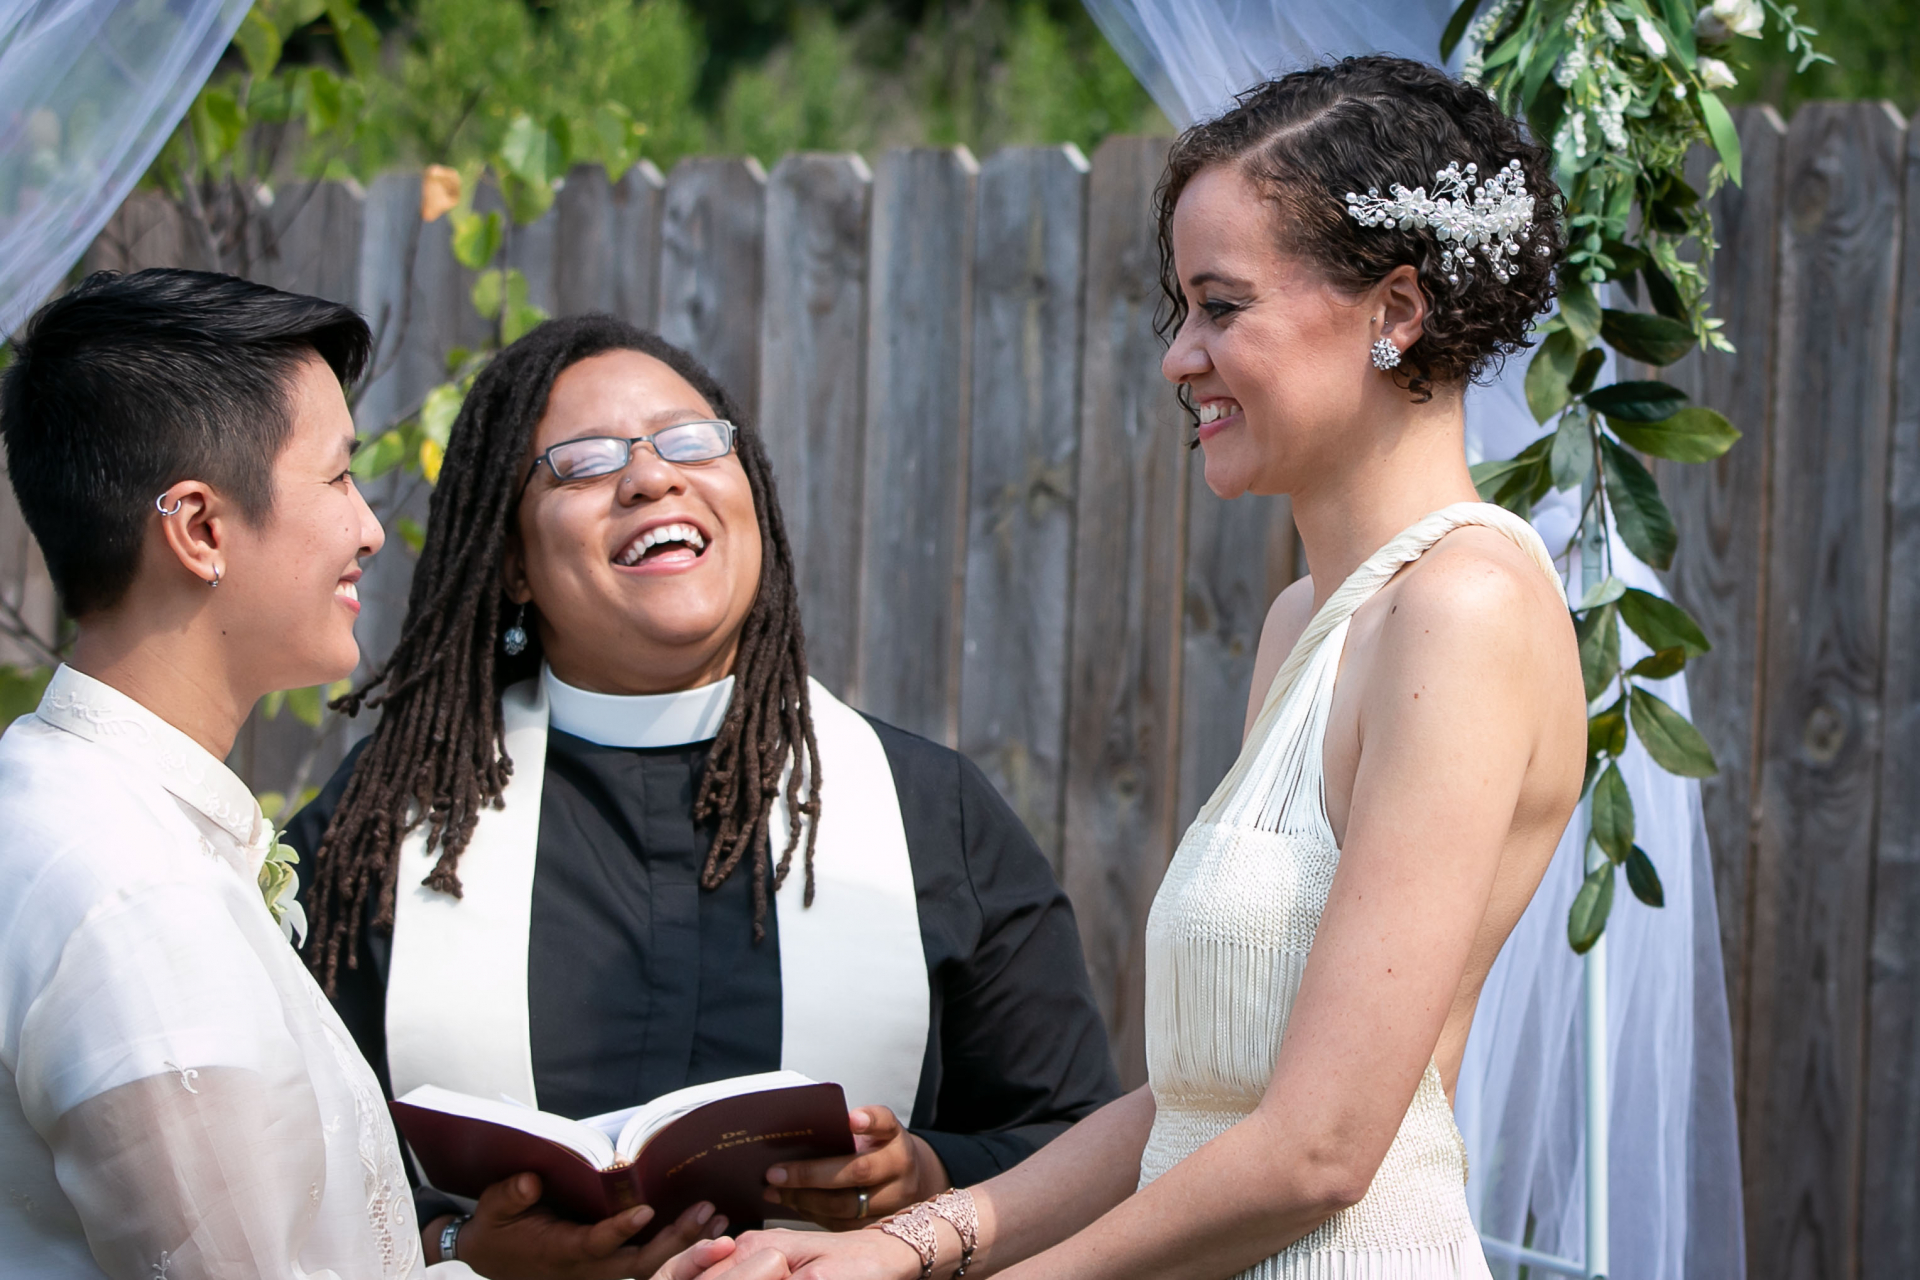 Outdoor At-Home Elopement Ceremony Image | The couple laughs together with their priest during the ceremony